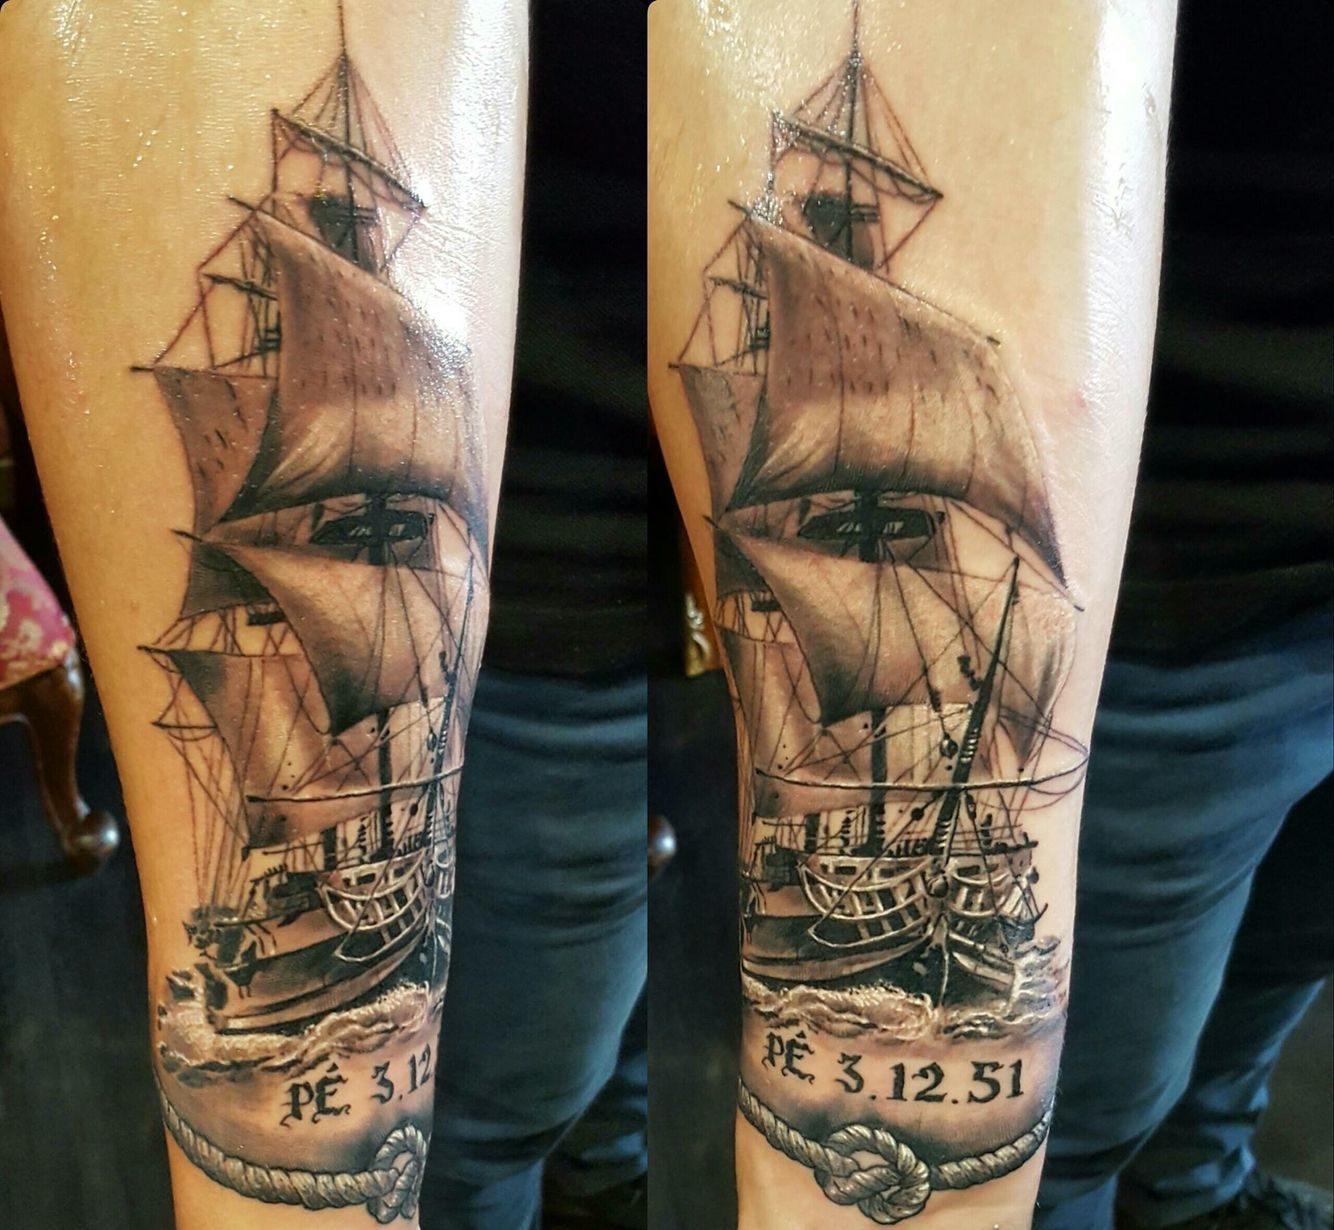 Very nice tattoo done by  Artist: Huszár Paddy Sándor  https://www.facebook.com/tattos.by.hussar/ At Nails Tattooshop in Ostend Belgium.